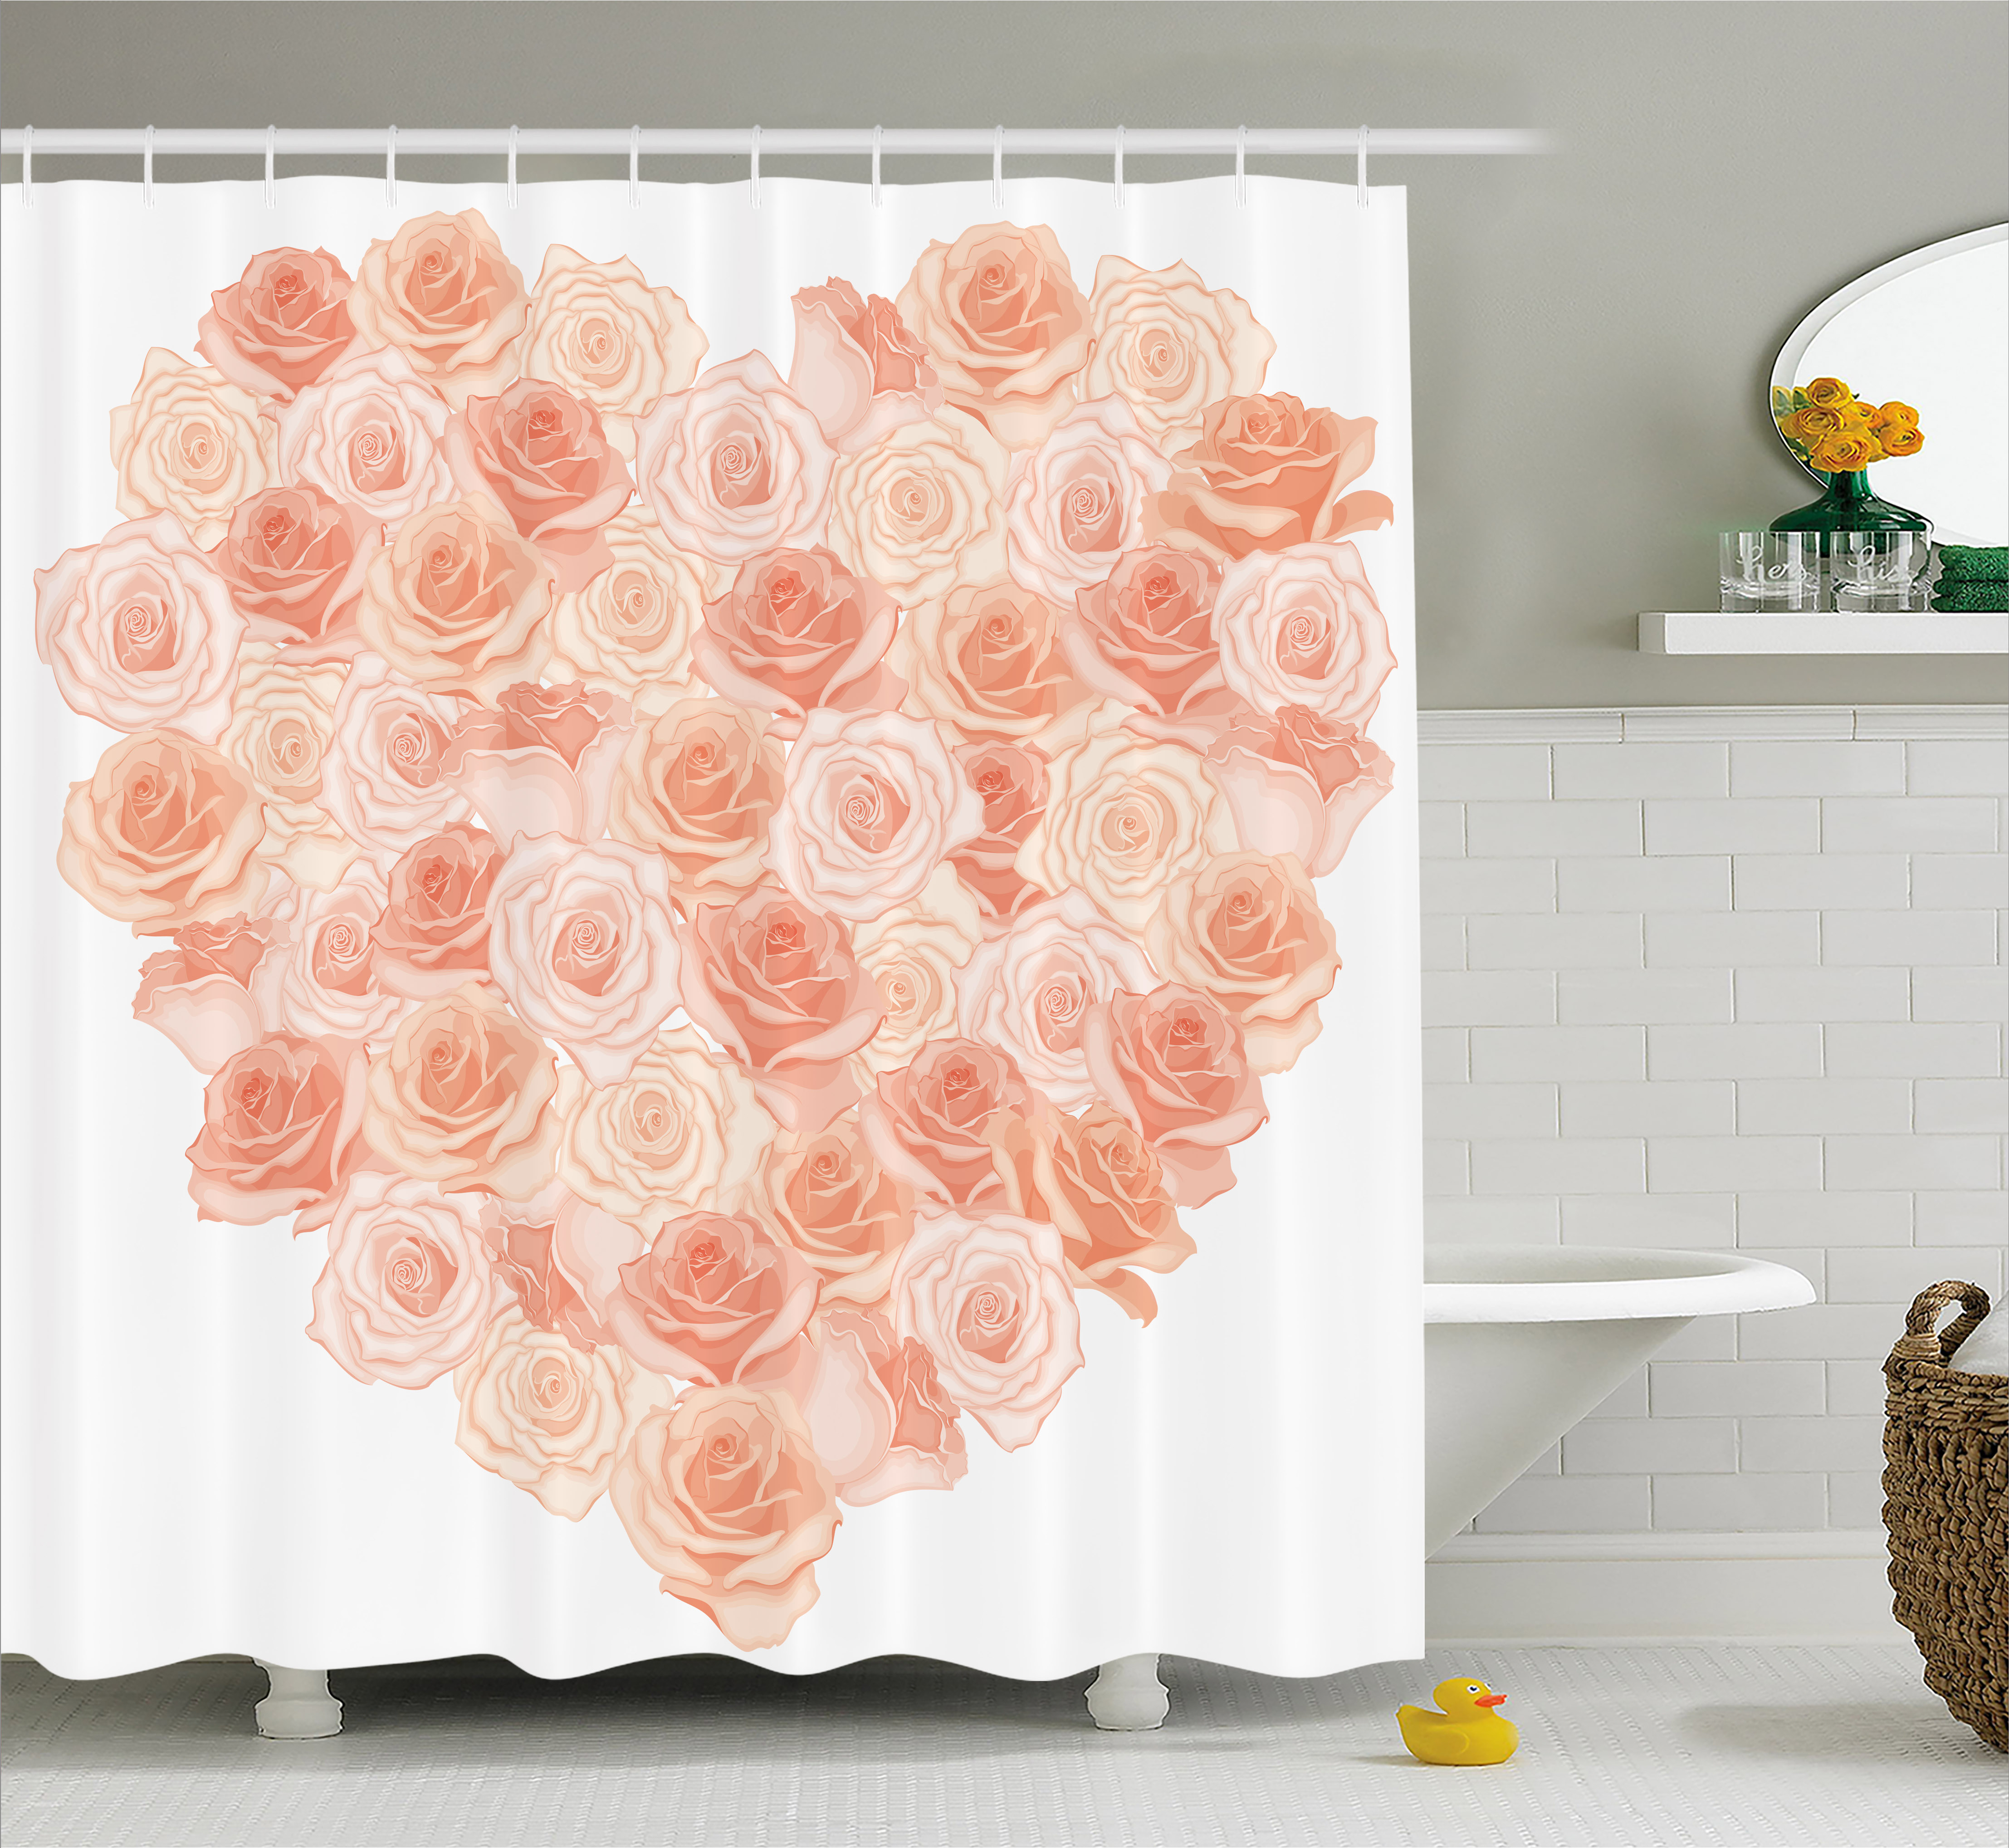 Peach Shower Curtain, Valentines Day Inspired Heart Shaped Blooming Roses Bouquet with Romantic Design, Fabric Bathroom Set with Hooks, 69W X 75L Inches Long, Salmon Peach, by Ambesonne